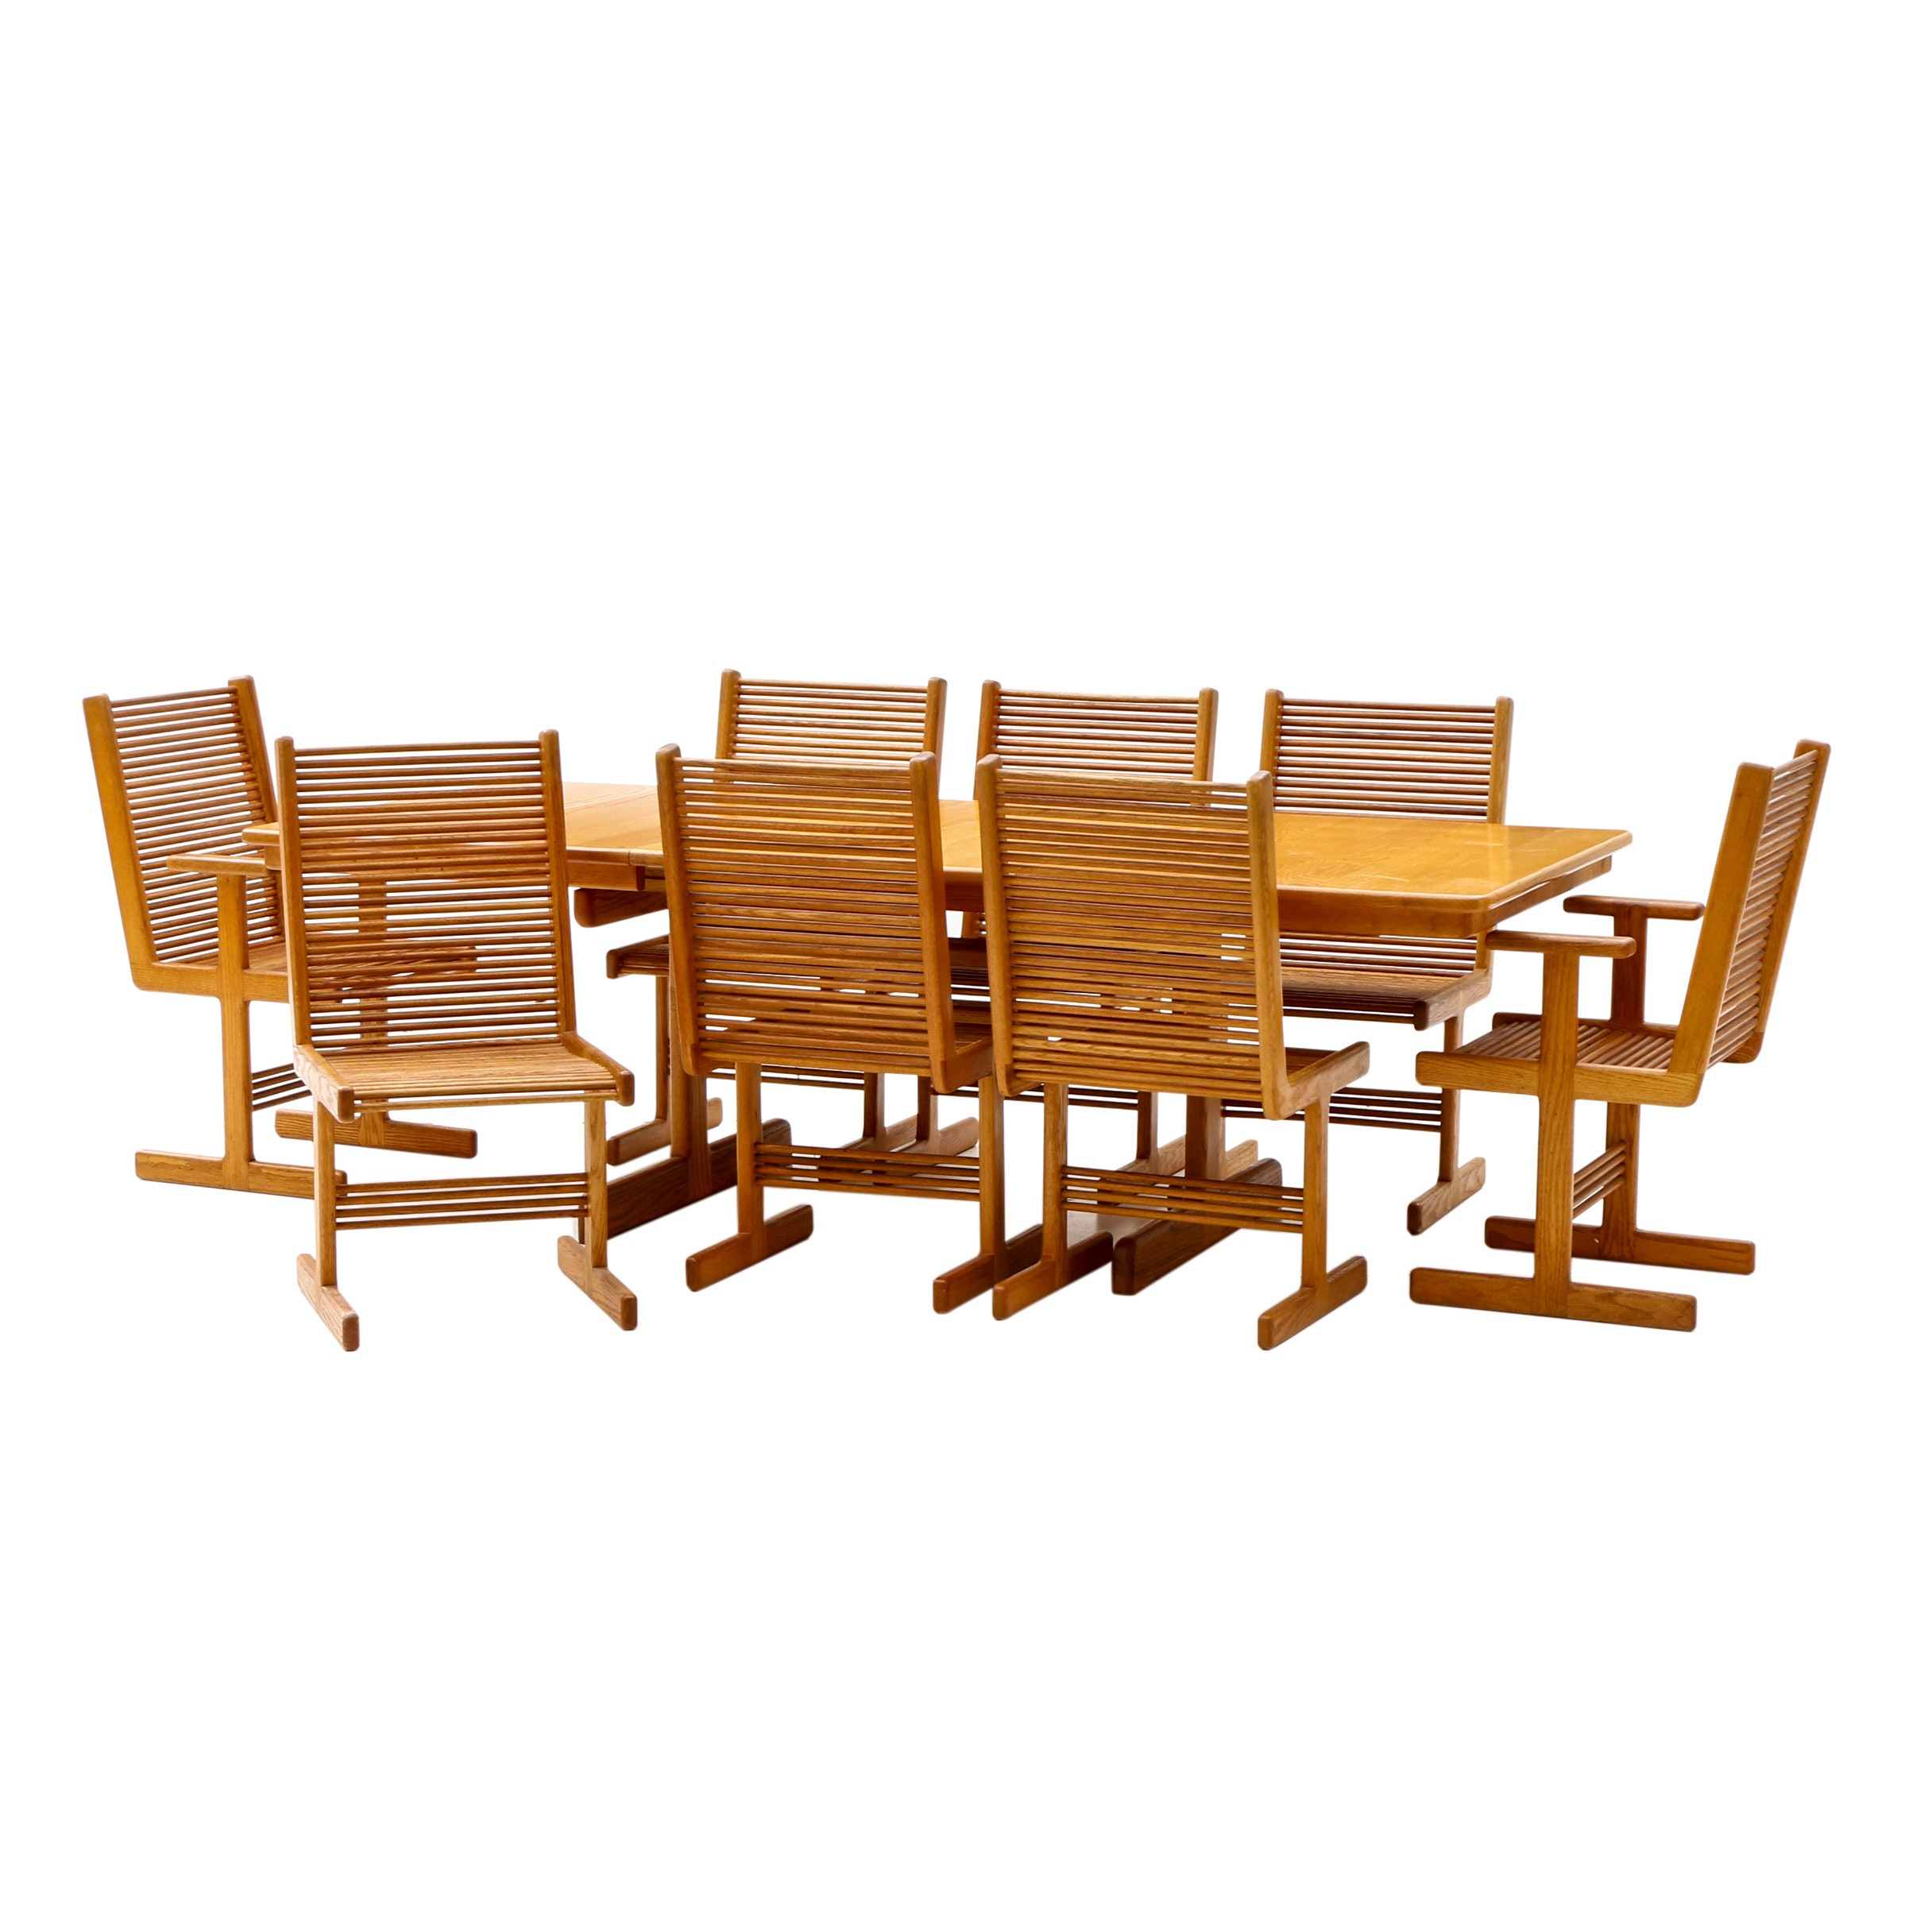 Stephen Hynson Oak Dowel Dining Table and Eight Chairs